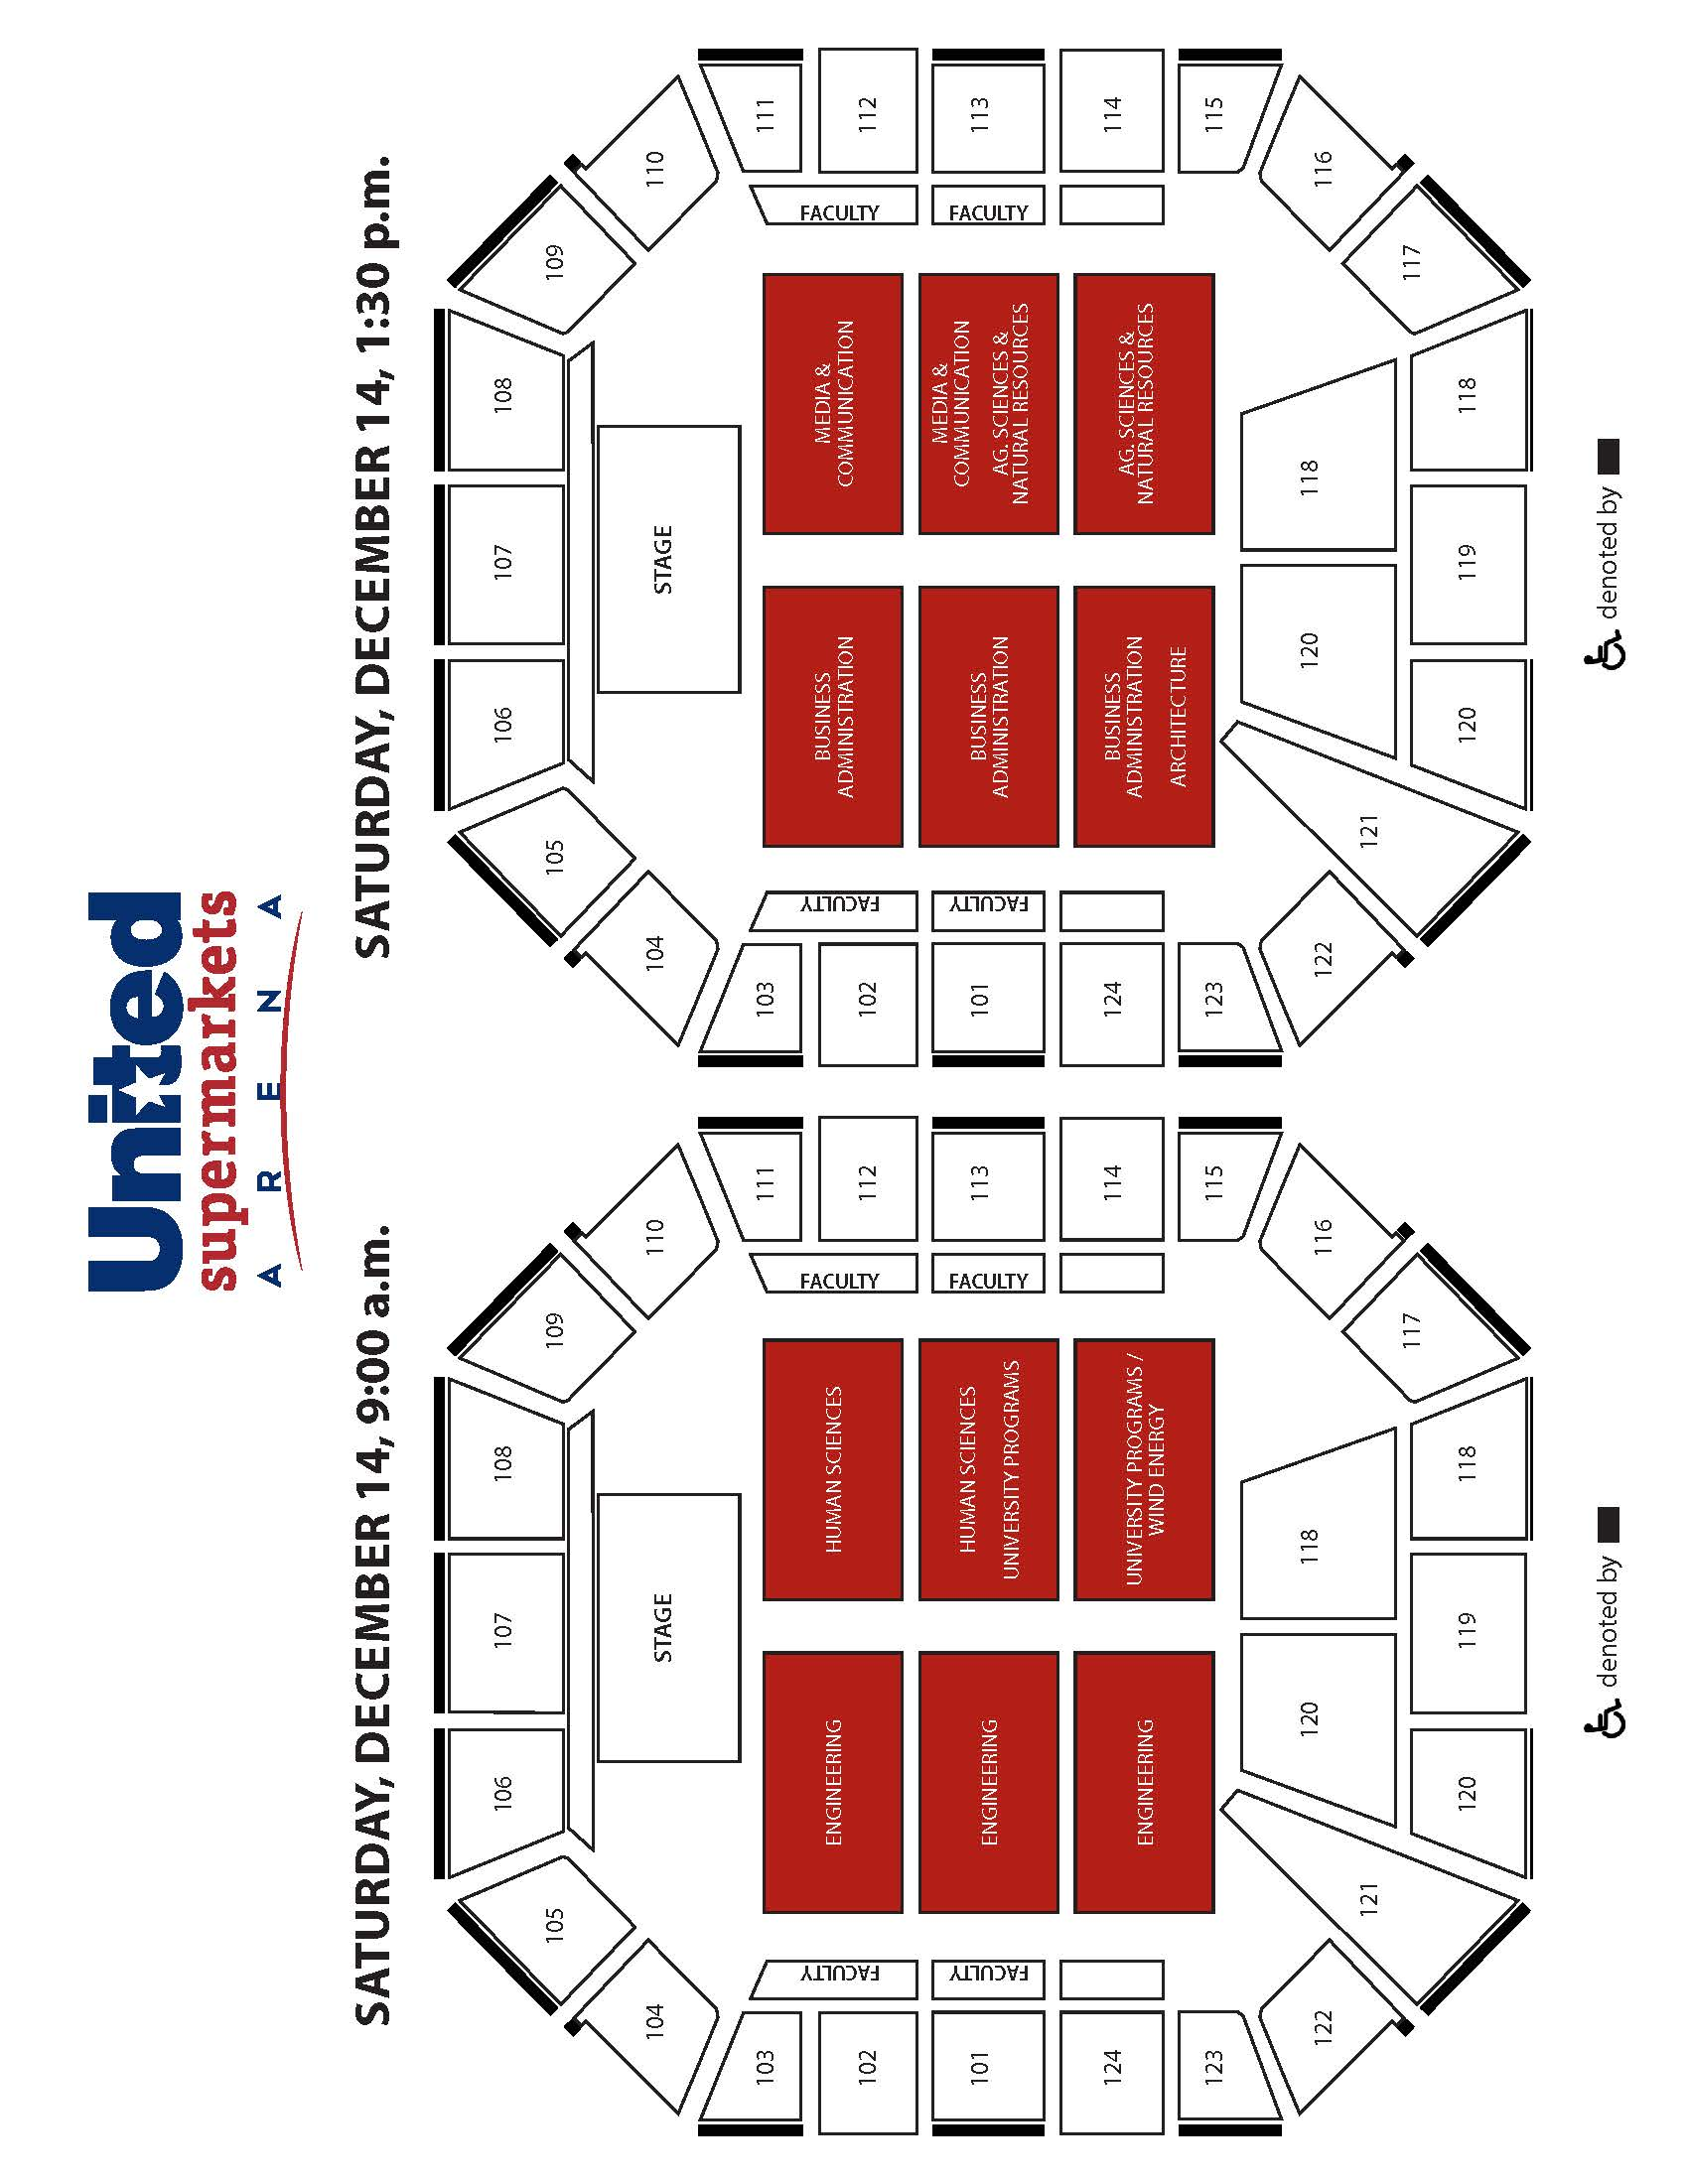 Arena Map and Guest Seating